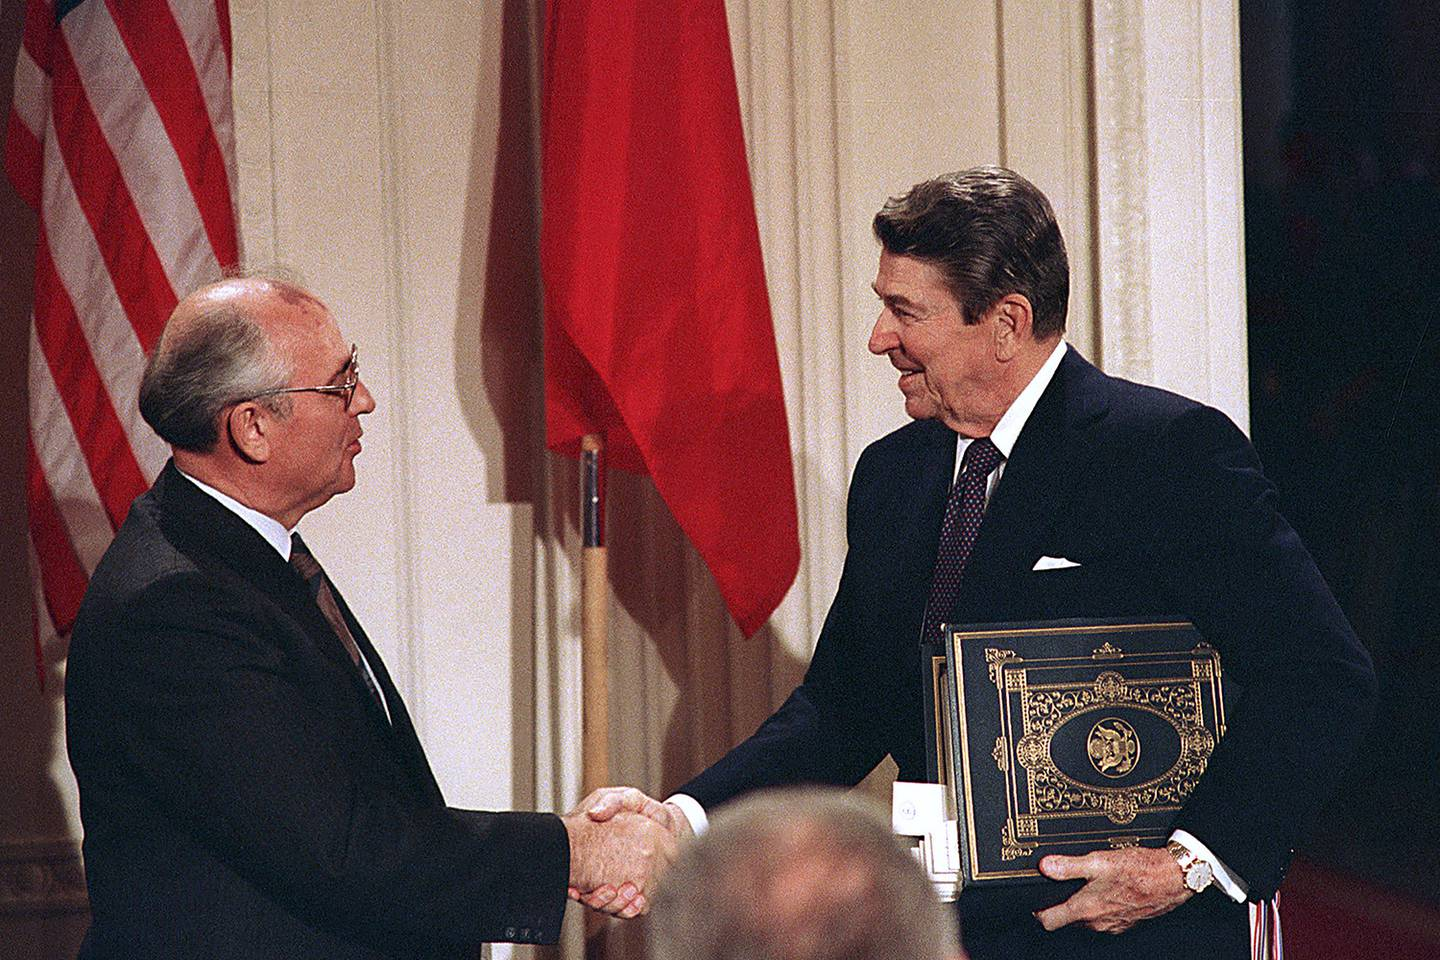 In this Dec. 8, 1987, file photo, President Ronald Reagan, right, shakes hands with Soviet leader Mikhail Gorbachev after the two leaders signed the Intermediate Range Nuclear Forces Treaty to eliminate intermediate-range missiles during a ceremony in the White House East Room in Washington.